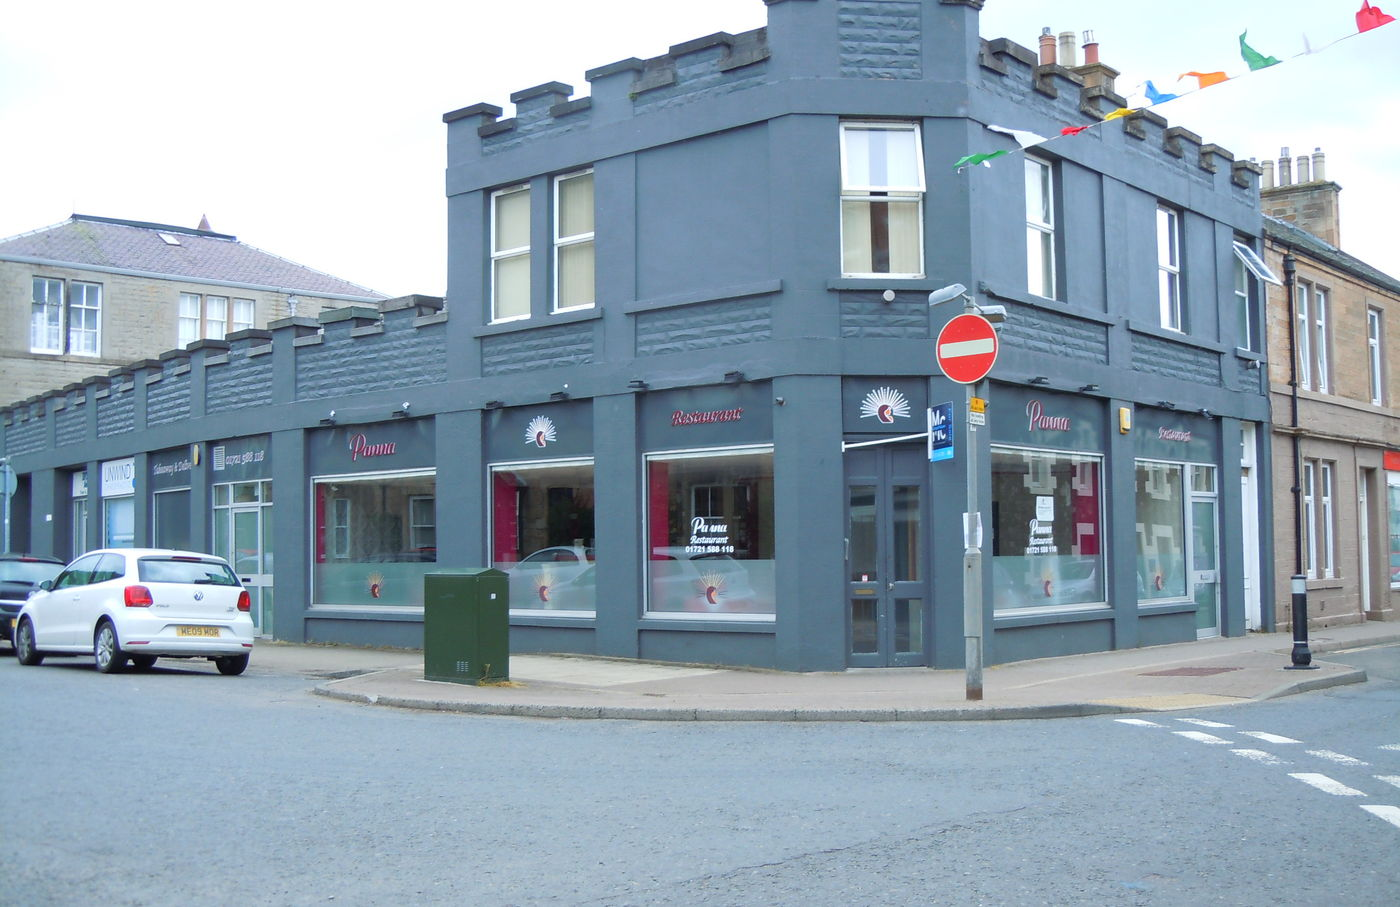 Restaurant Premises, Peebles